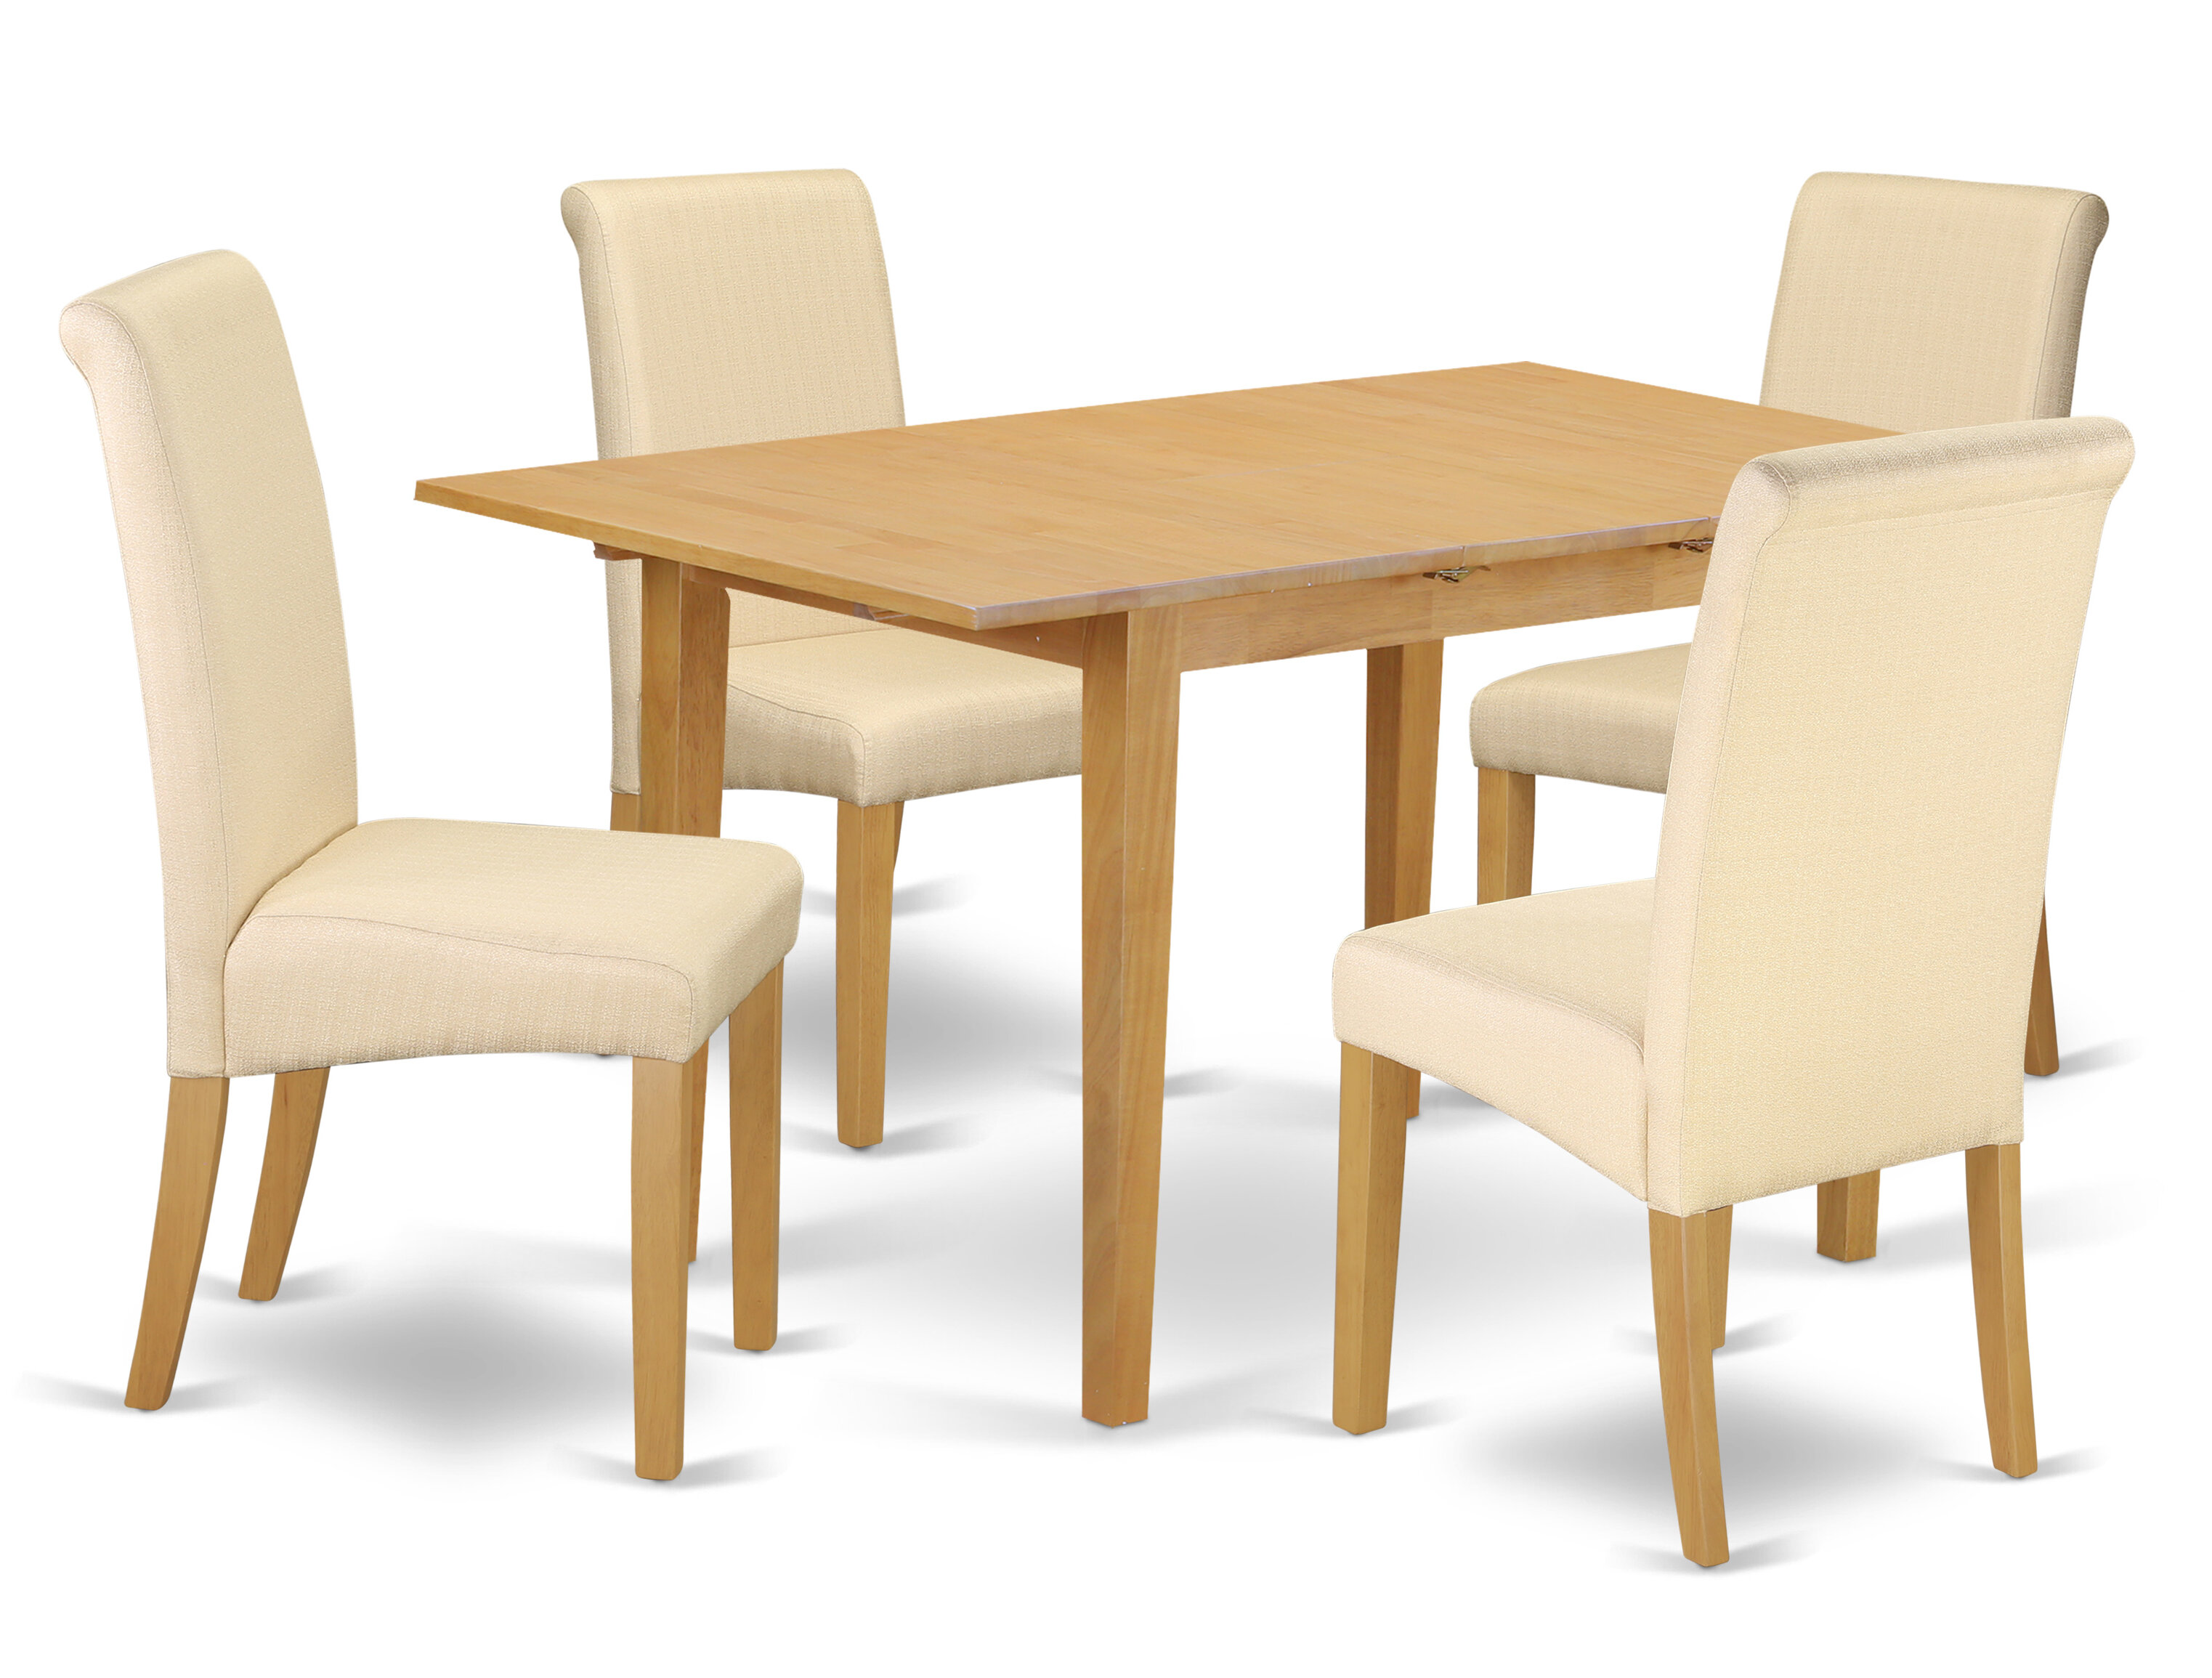 Sarai Kitchen Table 5 Piece Extendable Solid Wood Breakfast Nook Dining Set